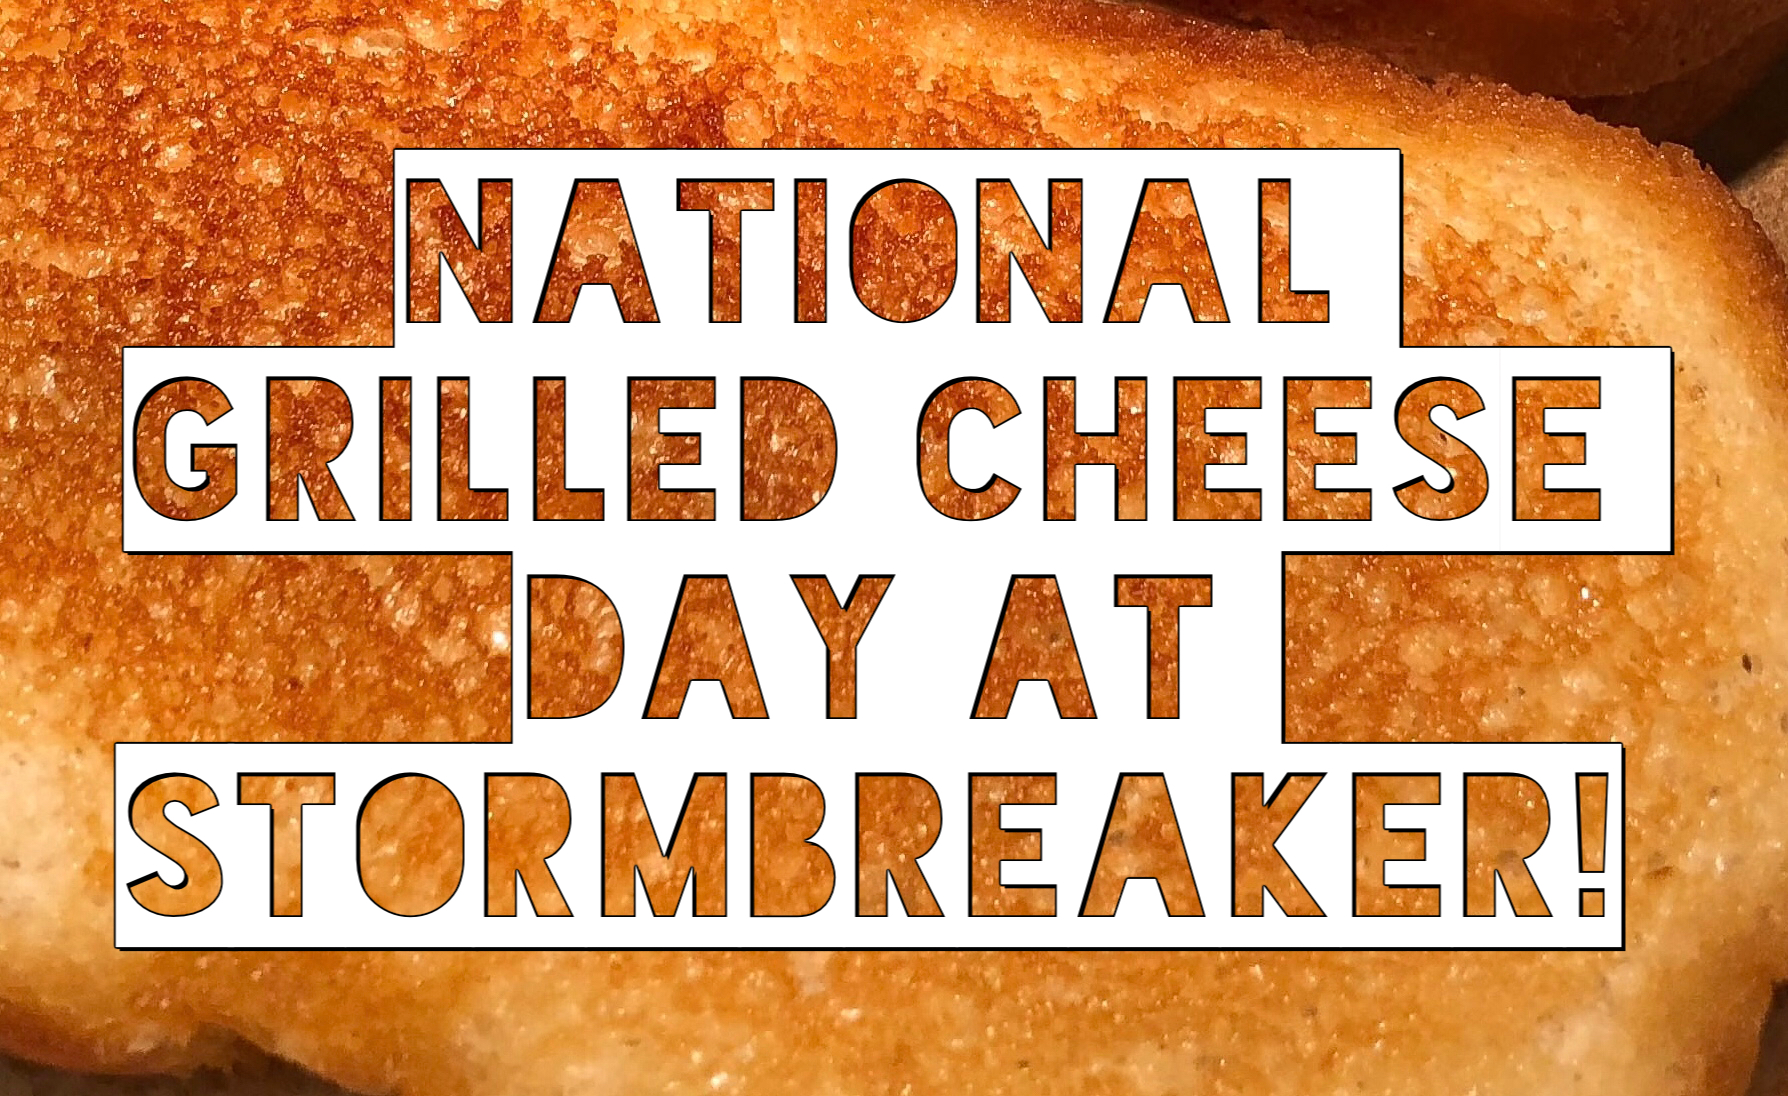 National Grilled Cheese Day at StormBreaker!